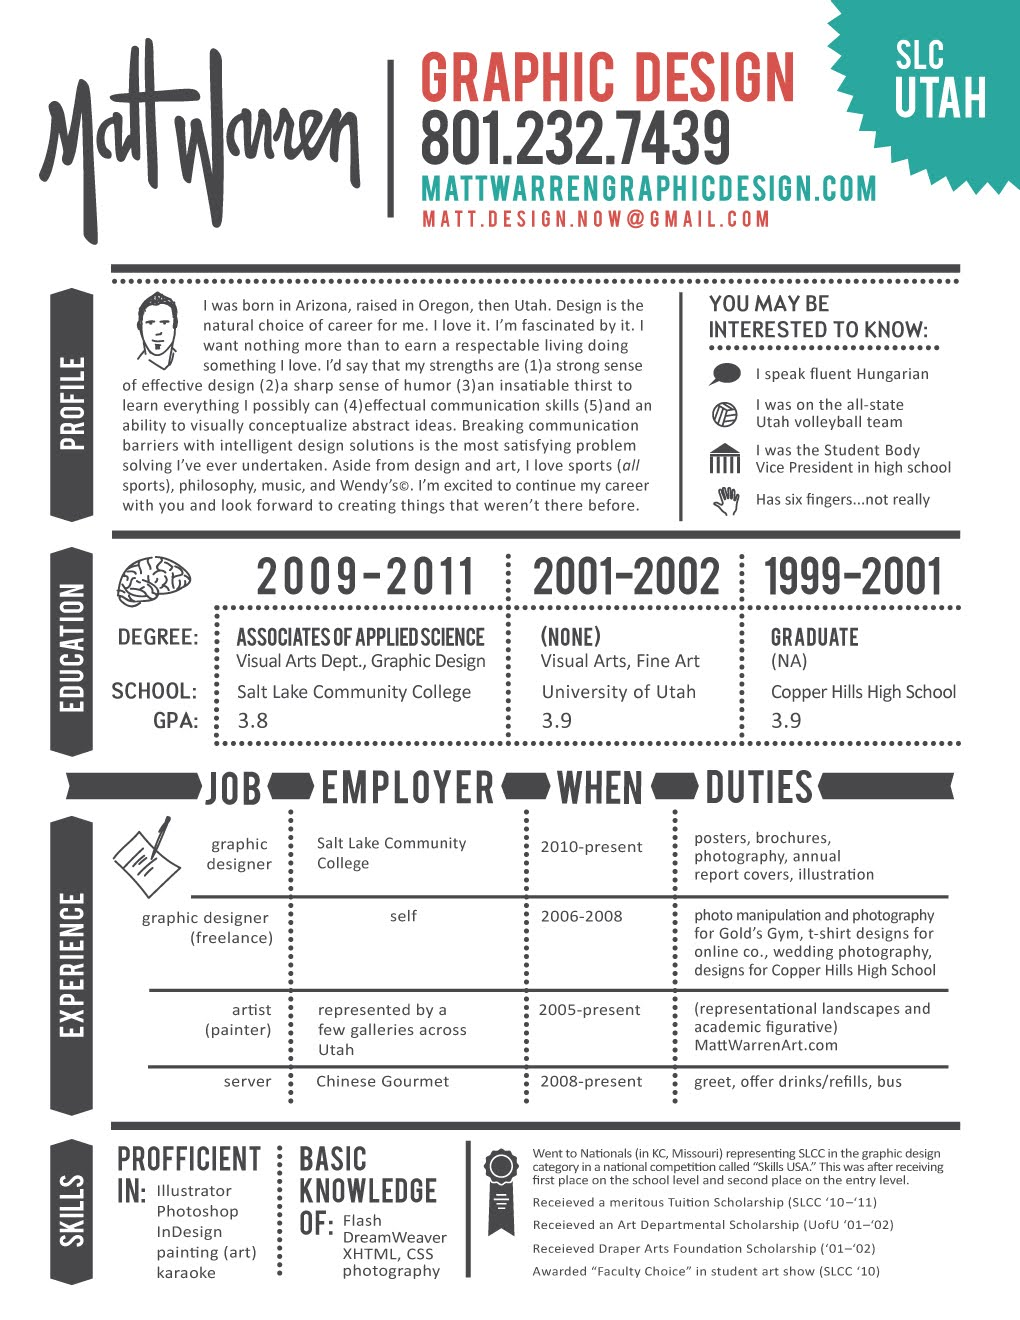 Opposenewapstandardsus  Wonderful  Images About Hire Me On Pinterest  Graphic Designer Resume  With Lovable  Images About Hire Me On Pinterest  Graphic Designer Resume Resume Design And Resume With Cool Sample Resume Objectives Also Skills To List On Resume In Addition Resume Font And Samples Of Resumes As Well As Resume References Additionally It Resume From Pinterestcom With Opposenewapstandardsus  Lovable  Images About Hire Me On Pinterest  Graphic Designer Resume  With Cool  Images About Hire Me On Pinterest  Graphic Designer Resume Resume Design And Resume And Wonderful Sample Resume Objectives Also Skills To List On Resume In Addition Resume Font From Pinterestcom